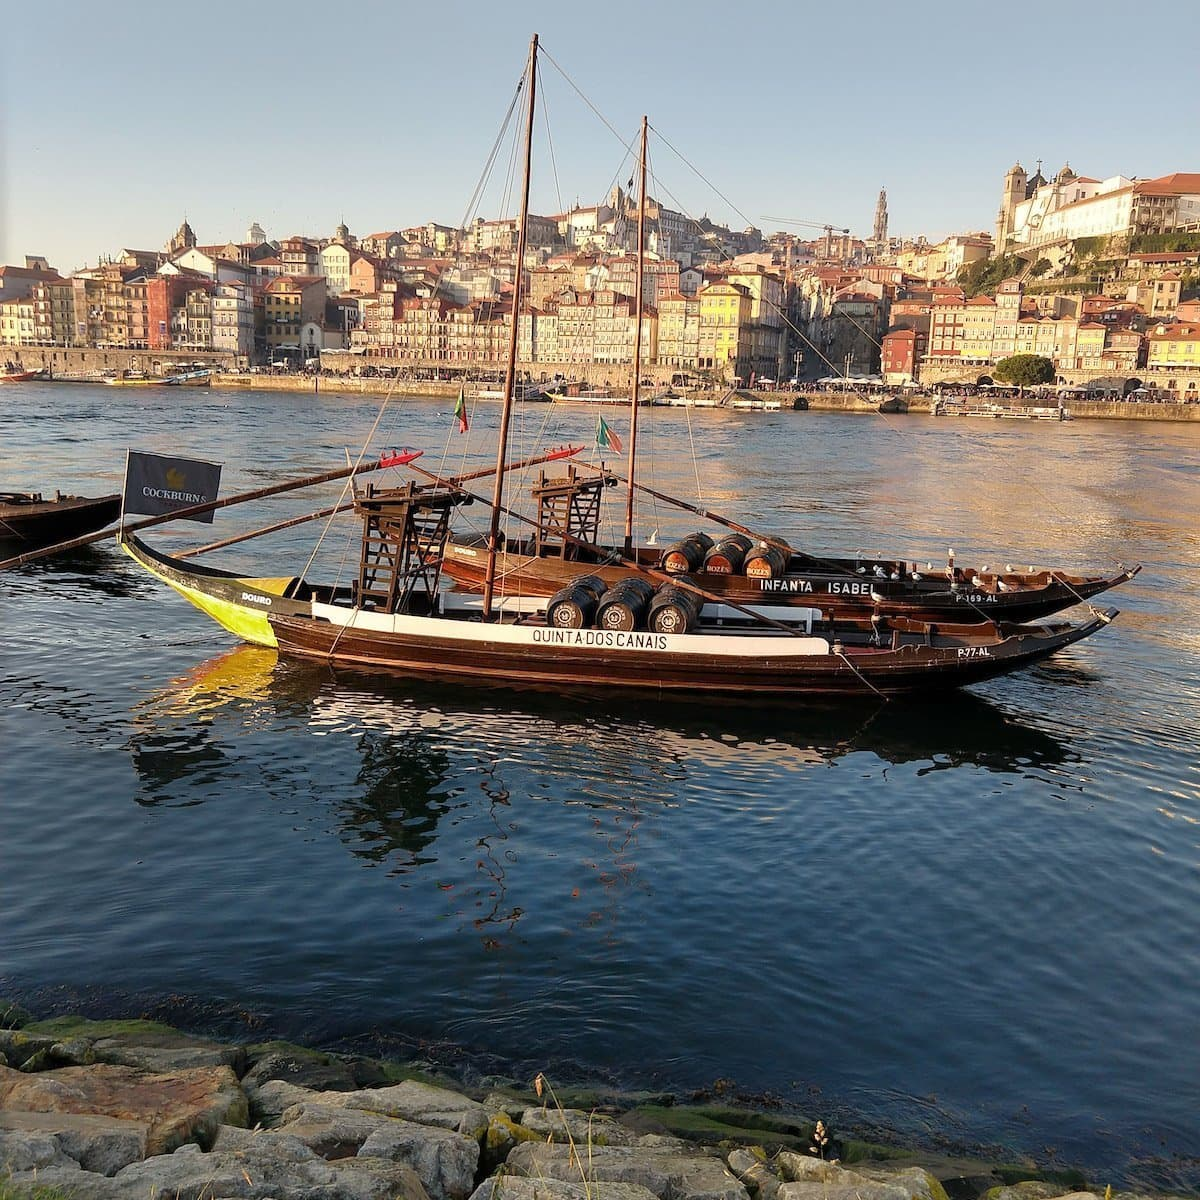 Port Wine Shipping Boat in Porto, Portugal 2019